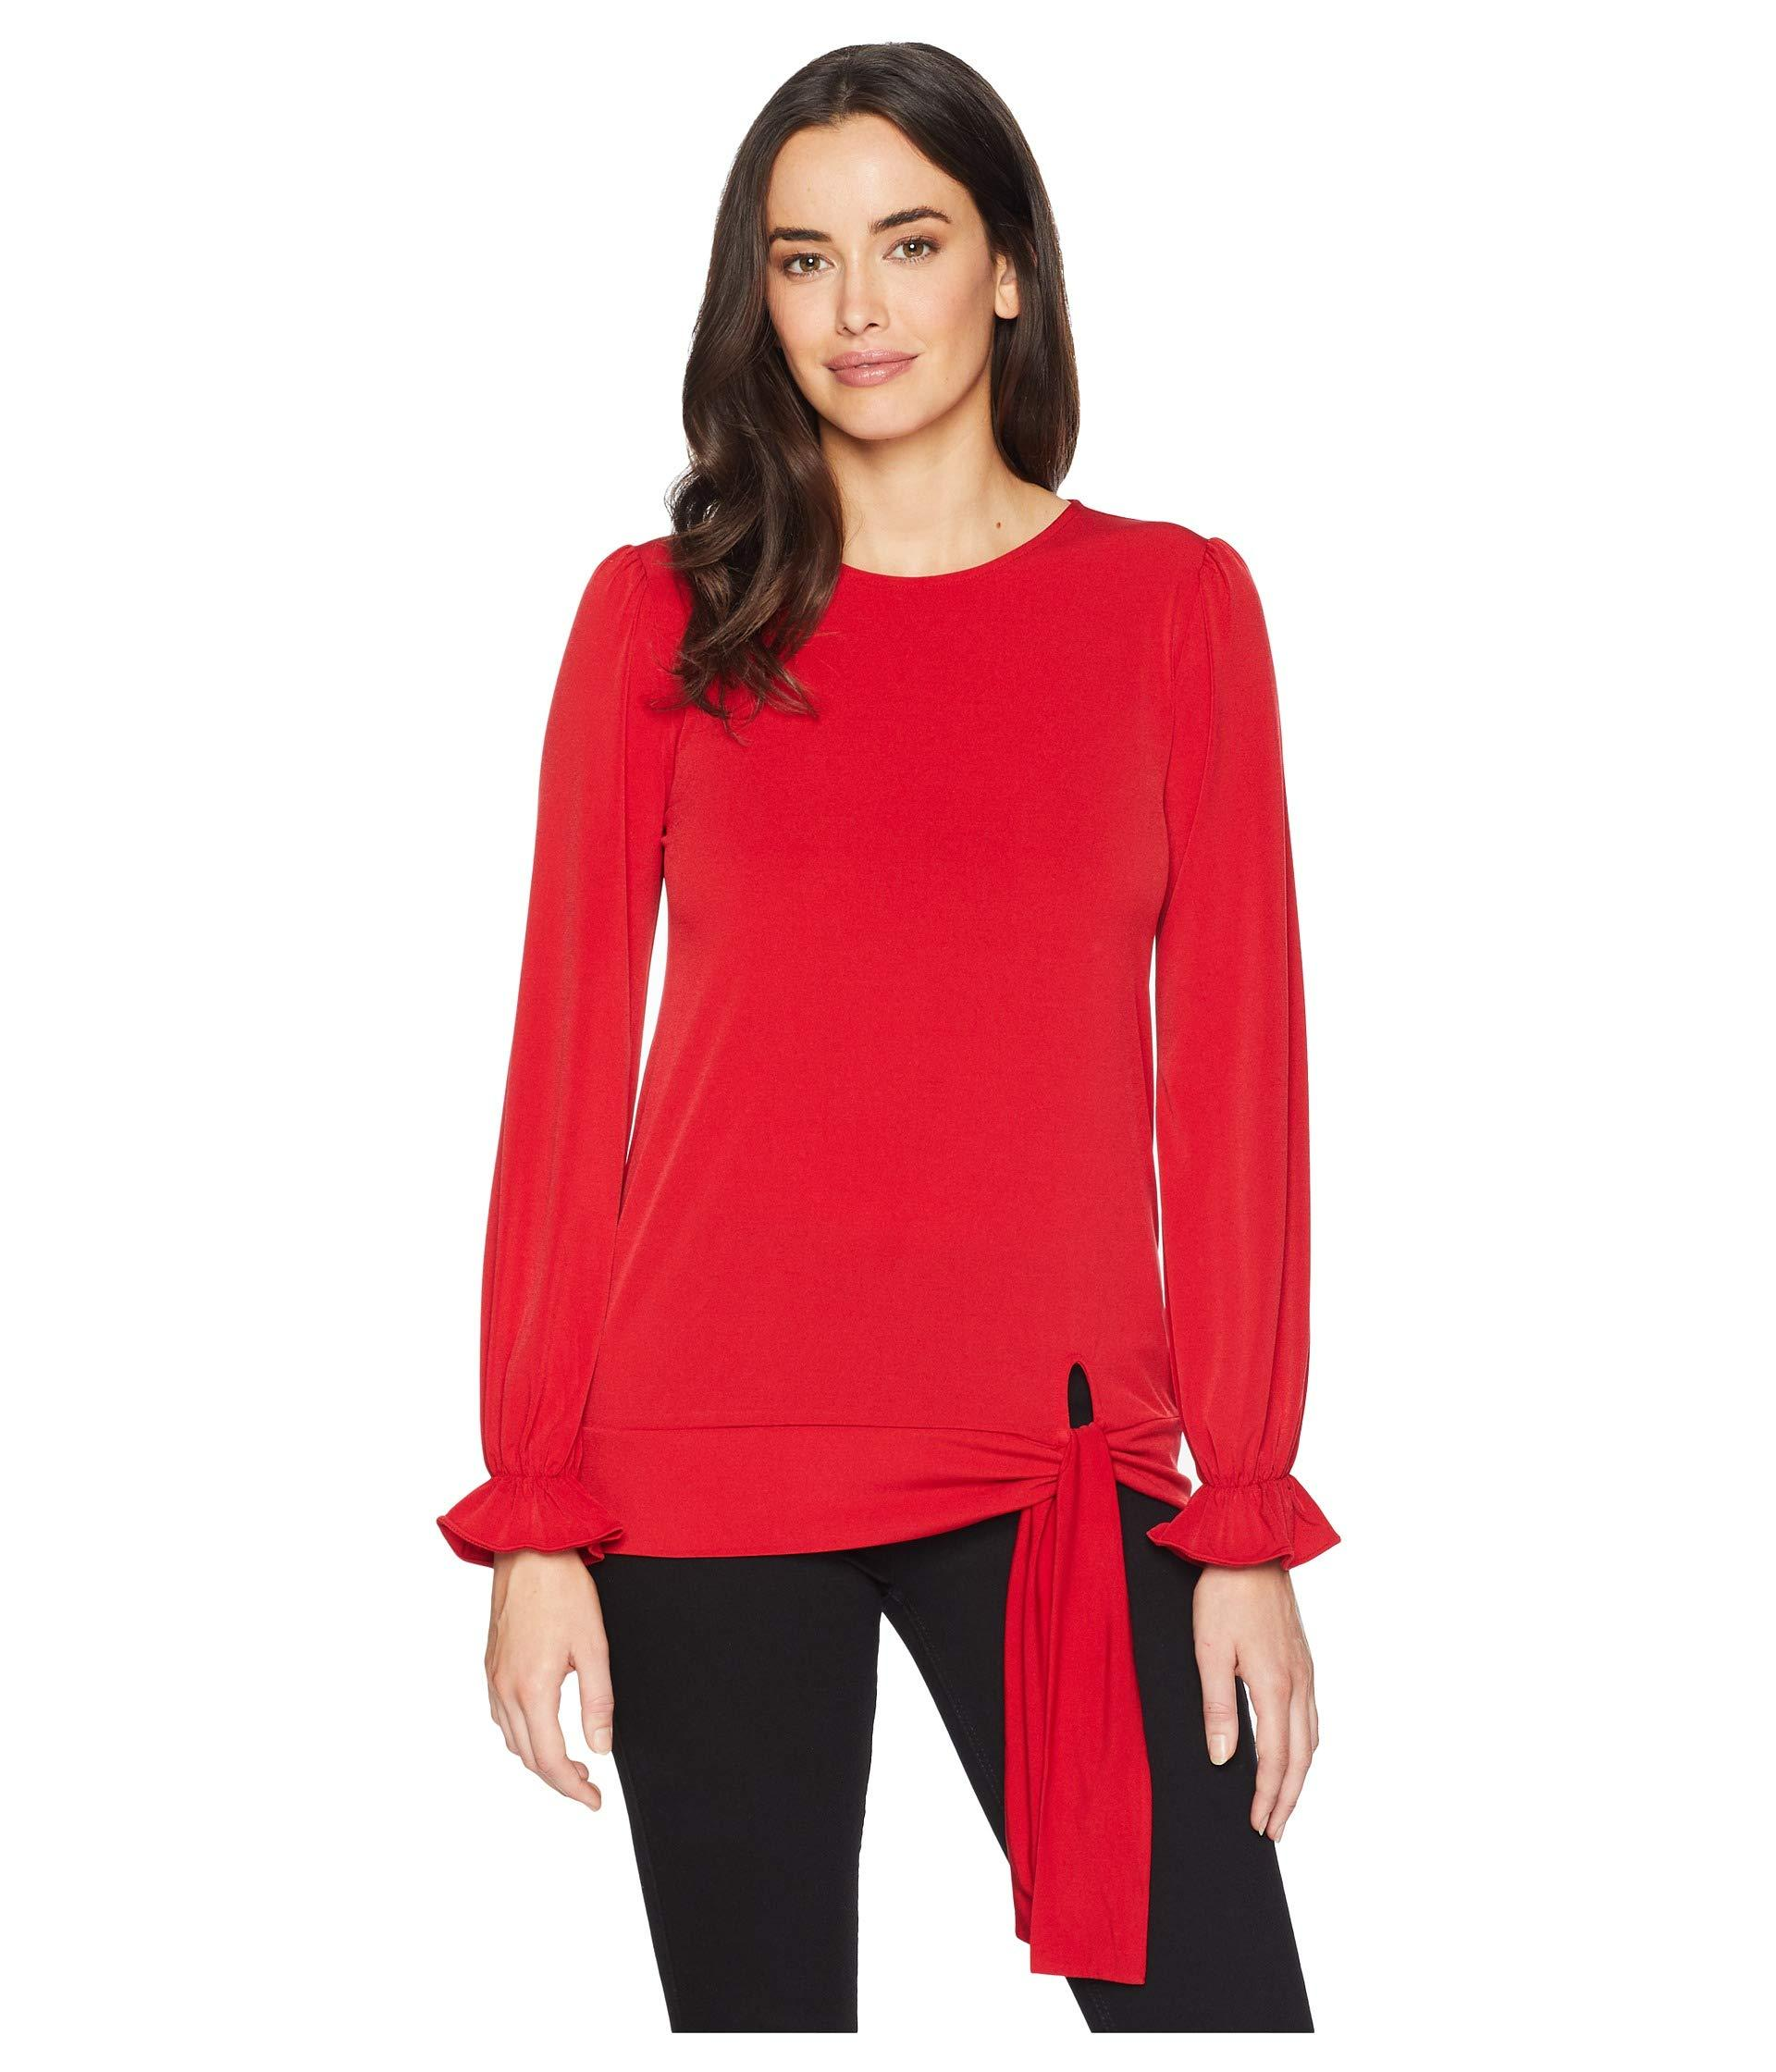 b15141a2aefbb Lyst - MICHAEL Michael Kors Long Sleeve Tie Blouse Top in Red - Save 26%